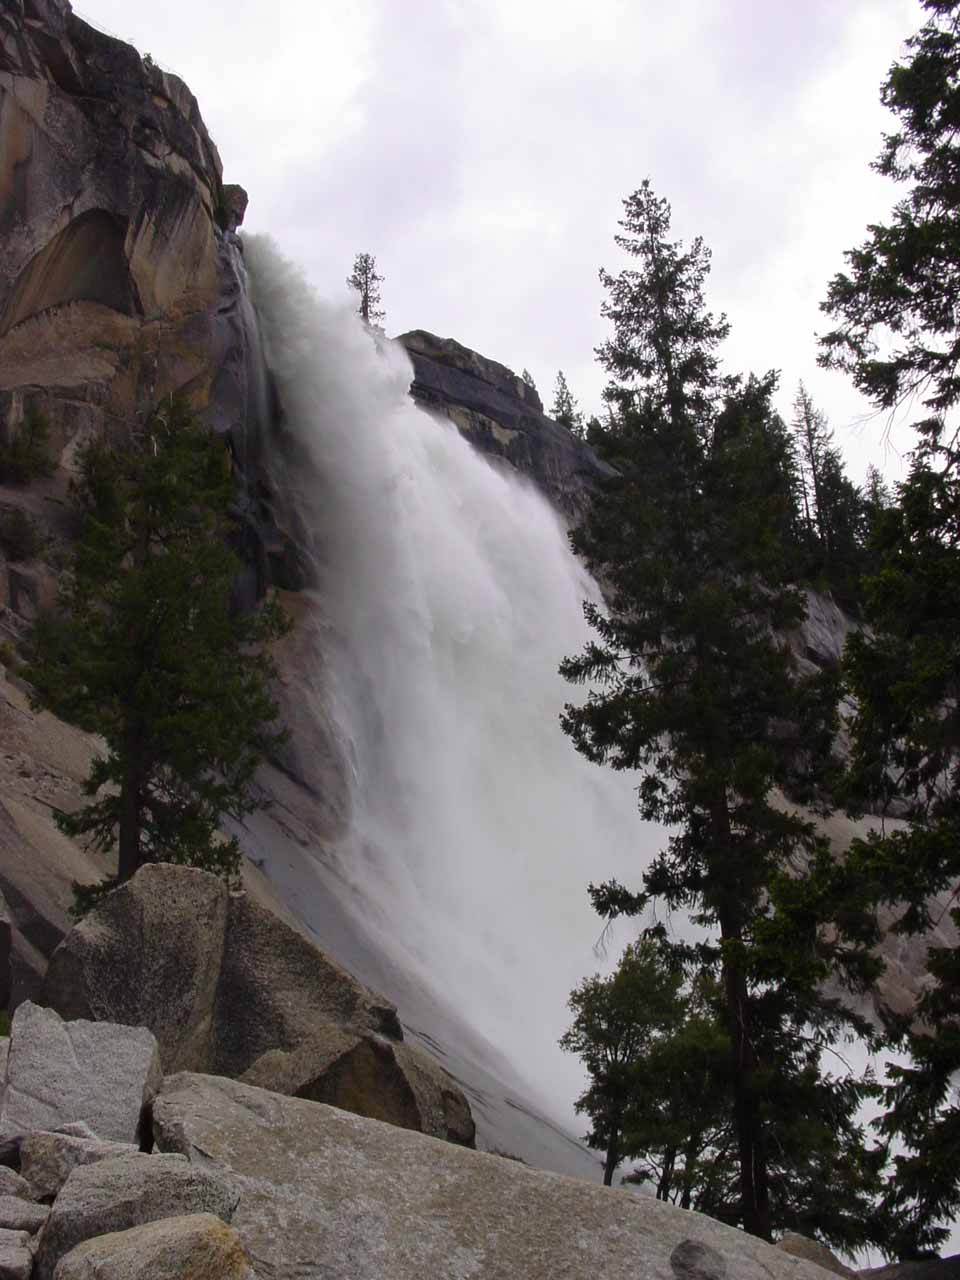 The profile of Nevada Fall from the Mist Trail